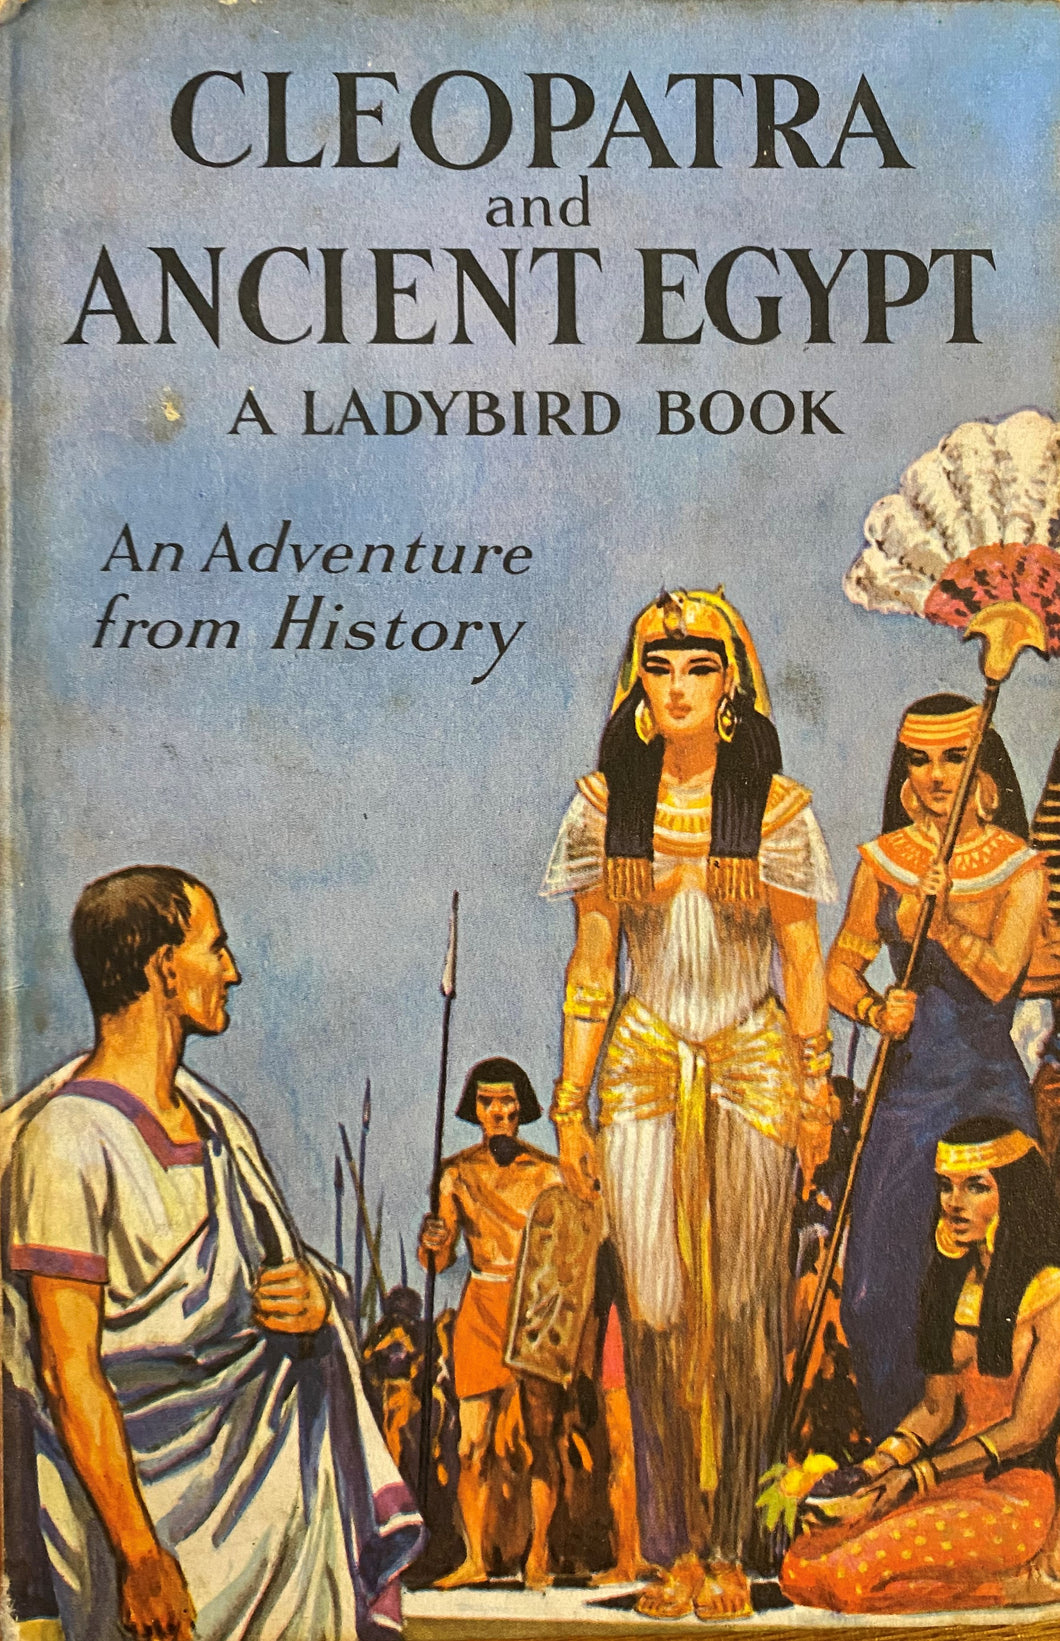 Cleopatra and Ancient Egypt (1965 - February 1971)